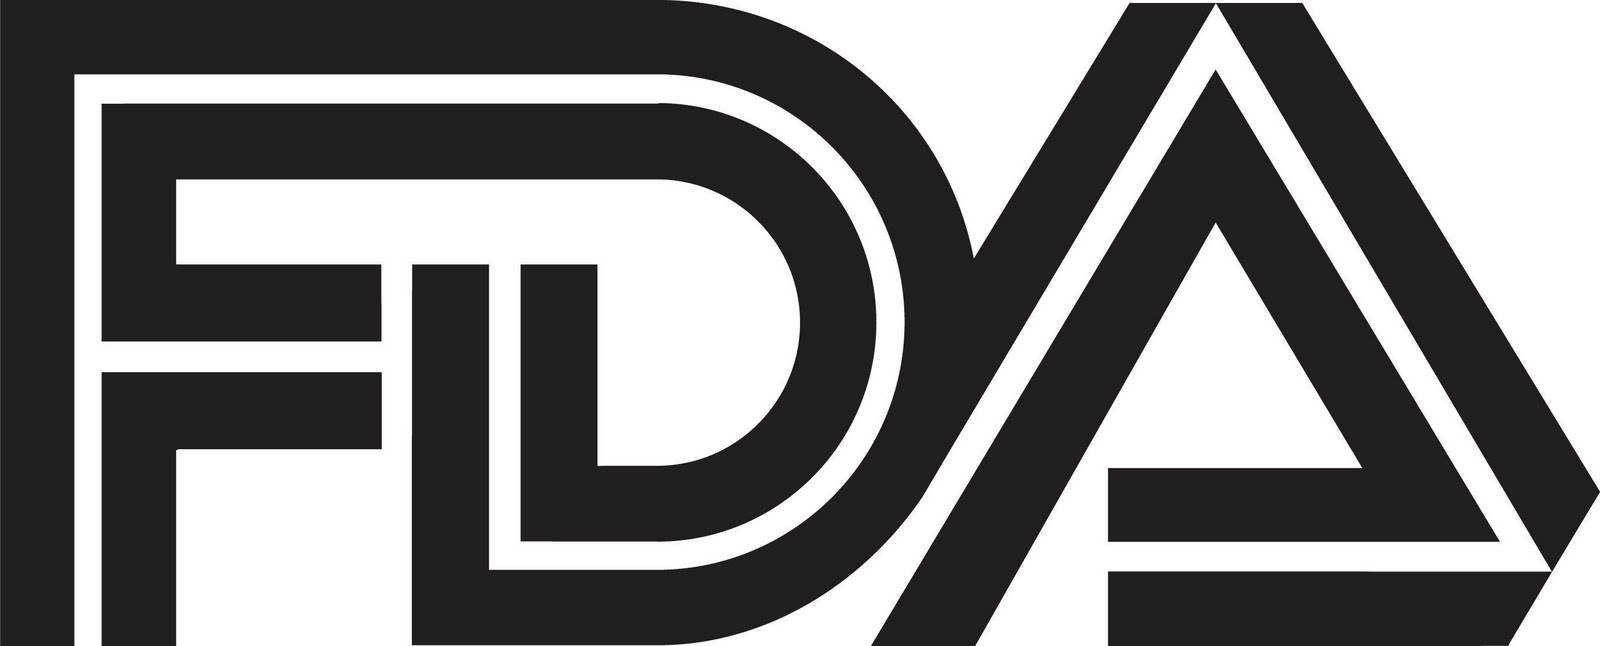 Food & Drug Administration Logo